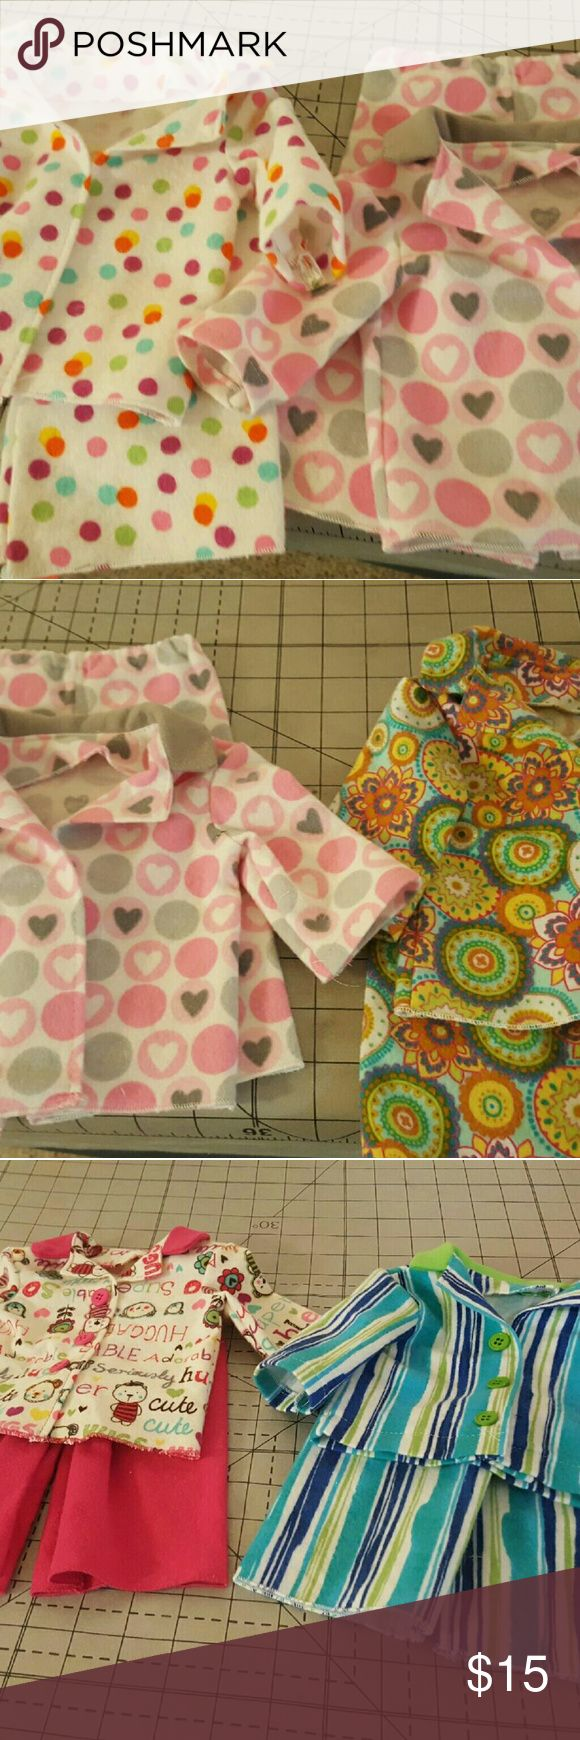 More Images of PJ Sets American Girl Doll handmade pajama sets.  Please comment which one you're interested in! Price is listed per individual set - see other listing of dolls wearing the pjs! Other